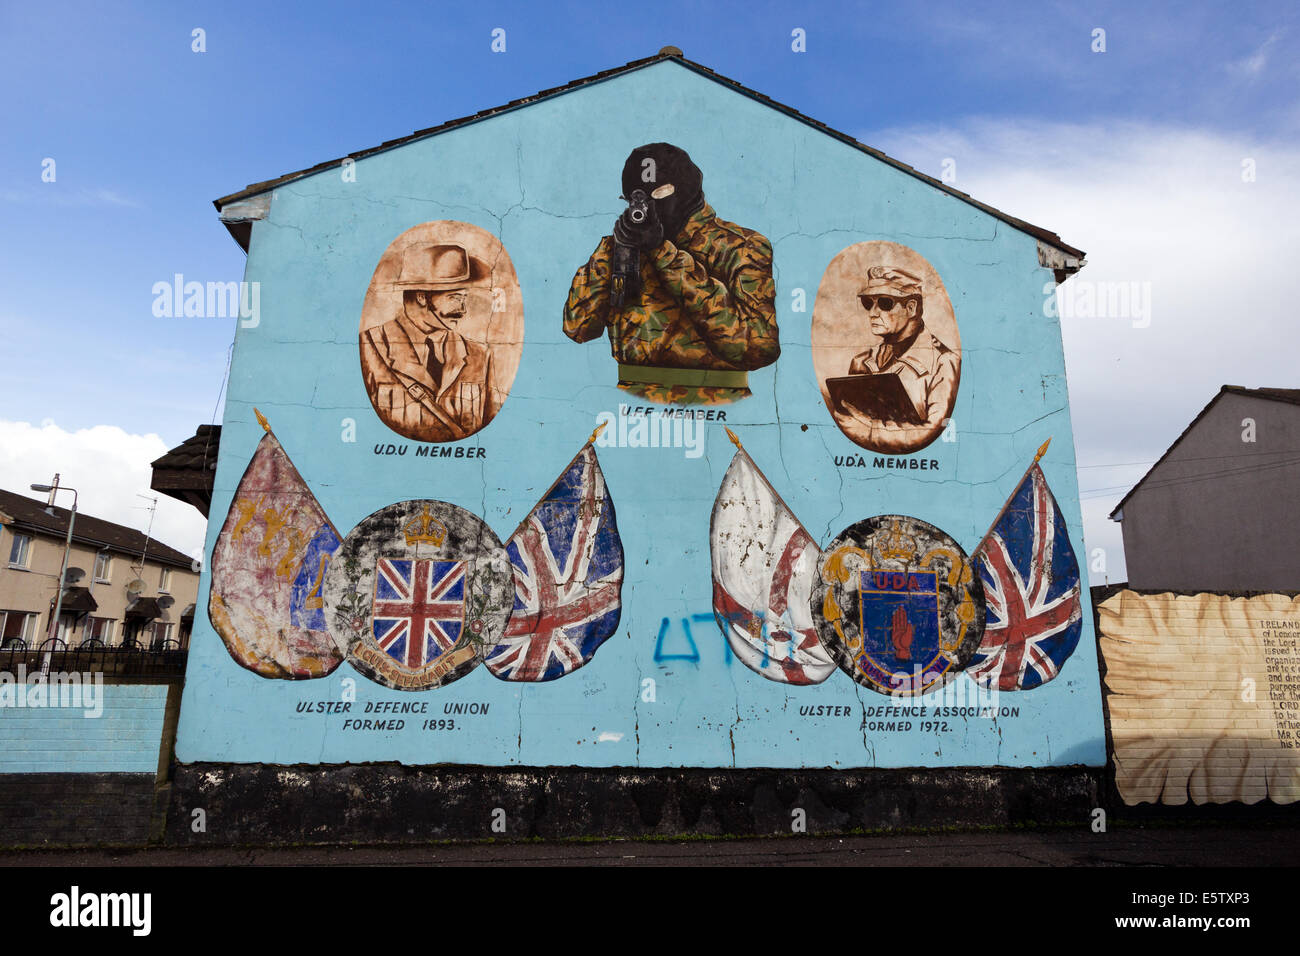 Mural in Protestant Shankill Road area of Belfast, Northern Ireland. - Stock Image